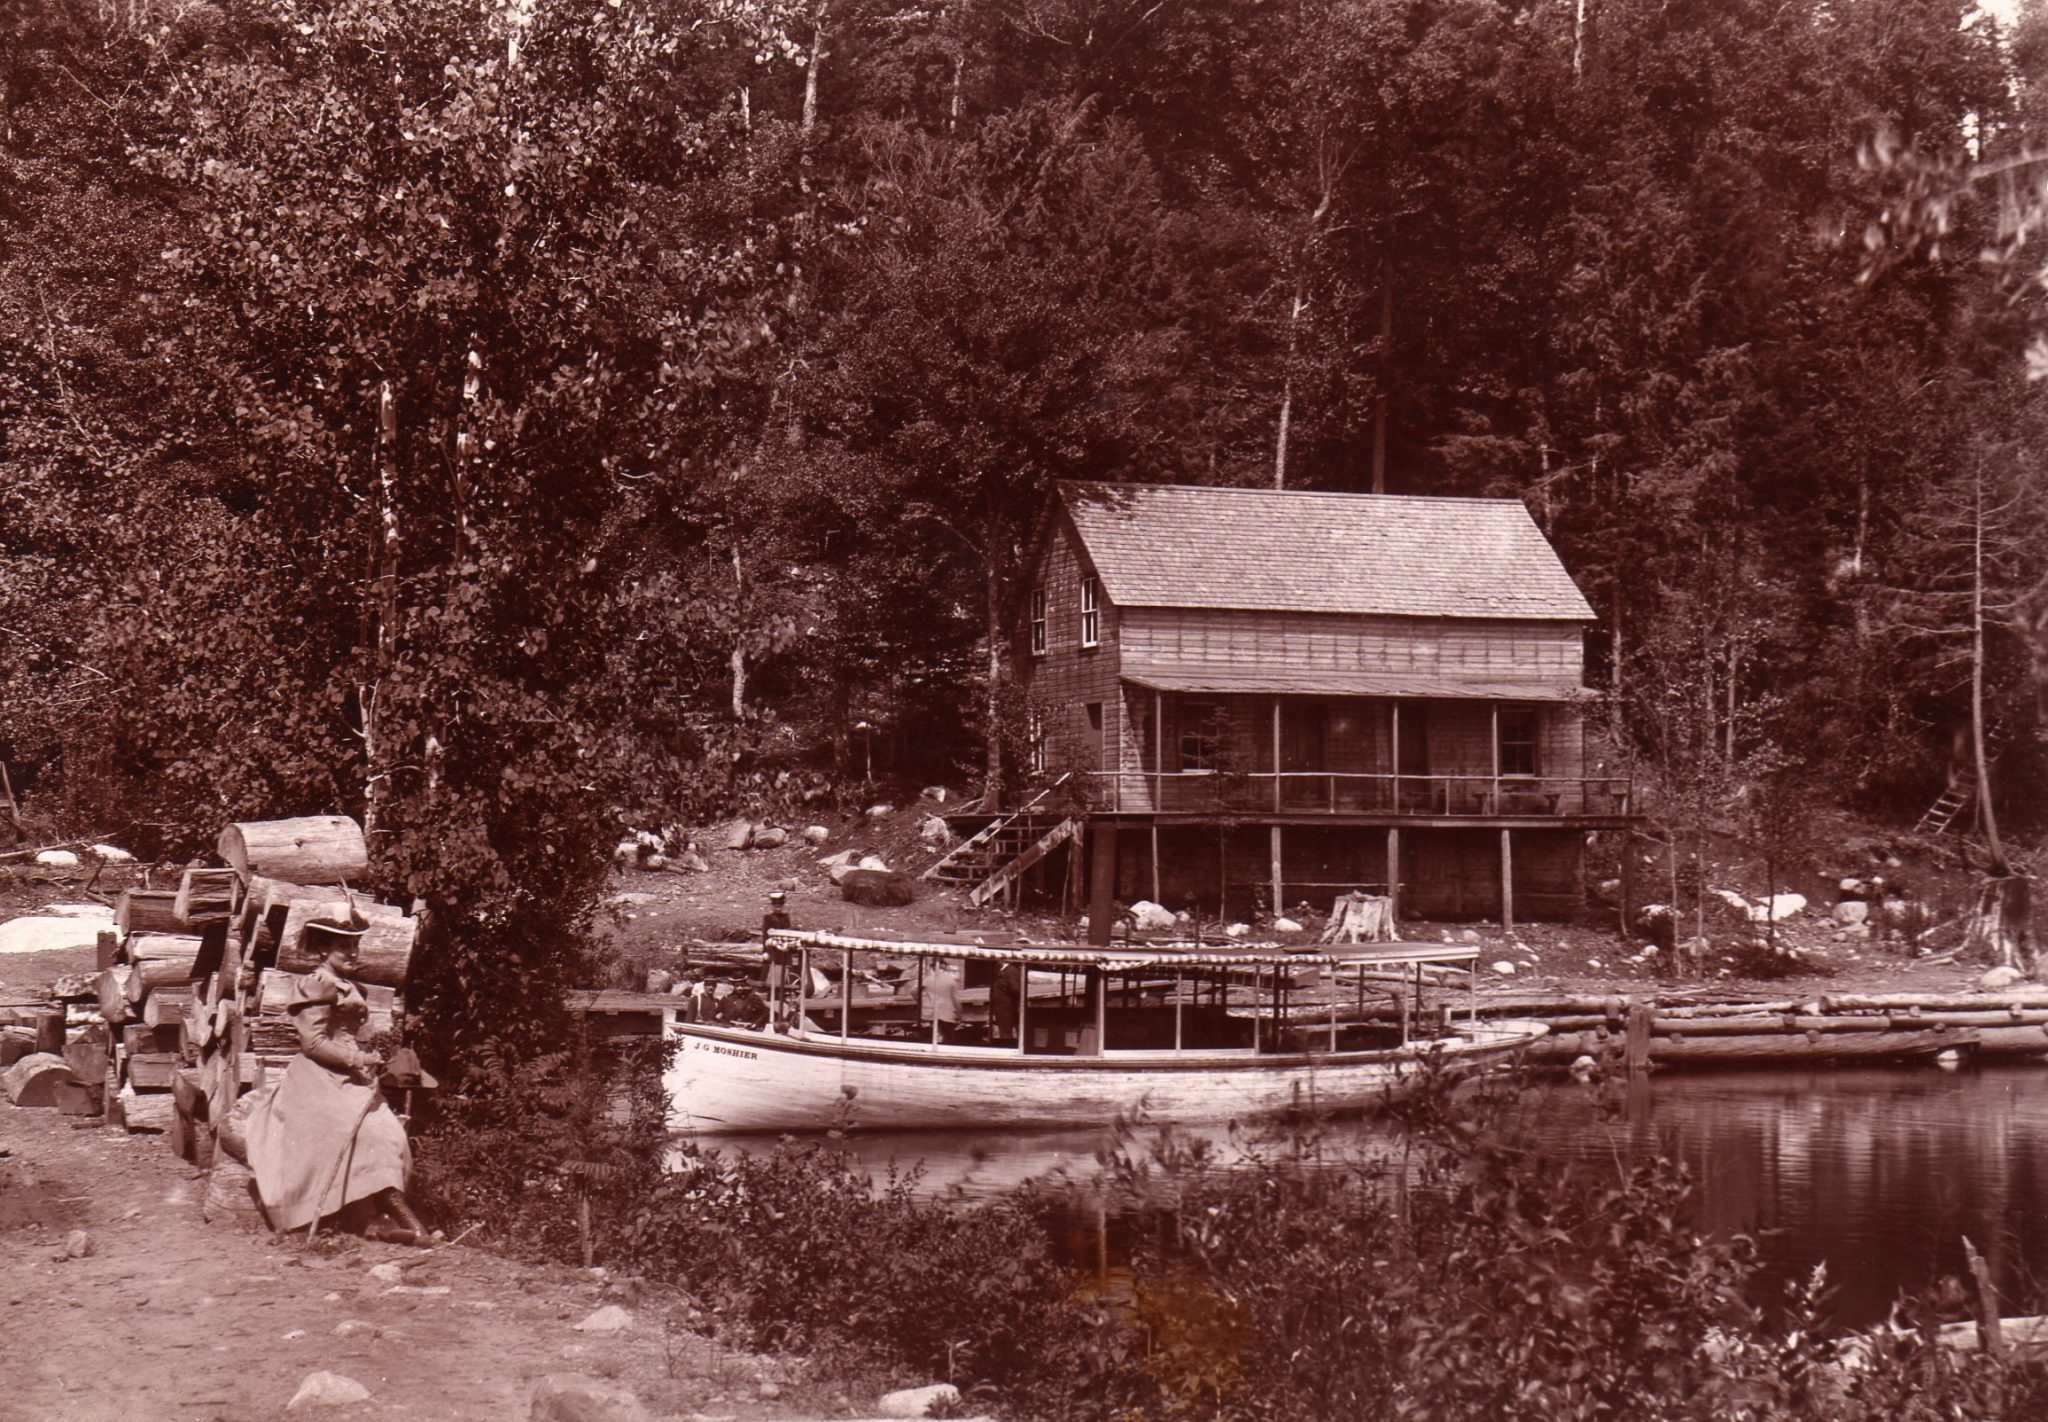 The Early History Of Seventh Lake - - The Adirondack Almanack